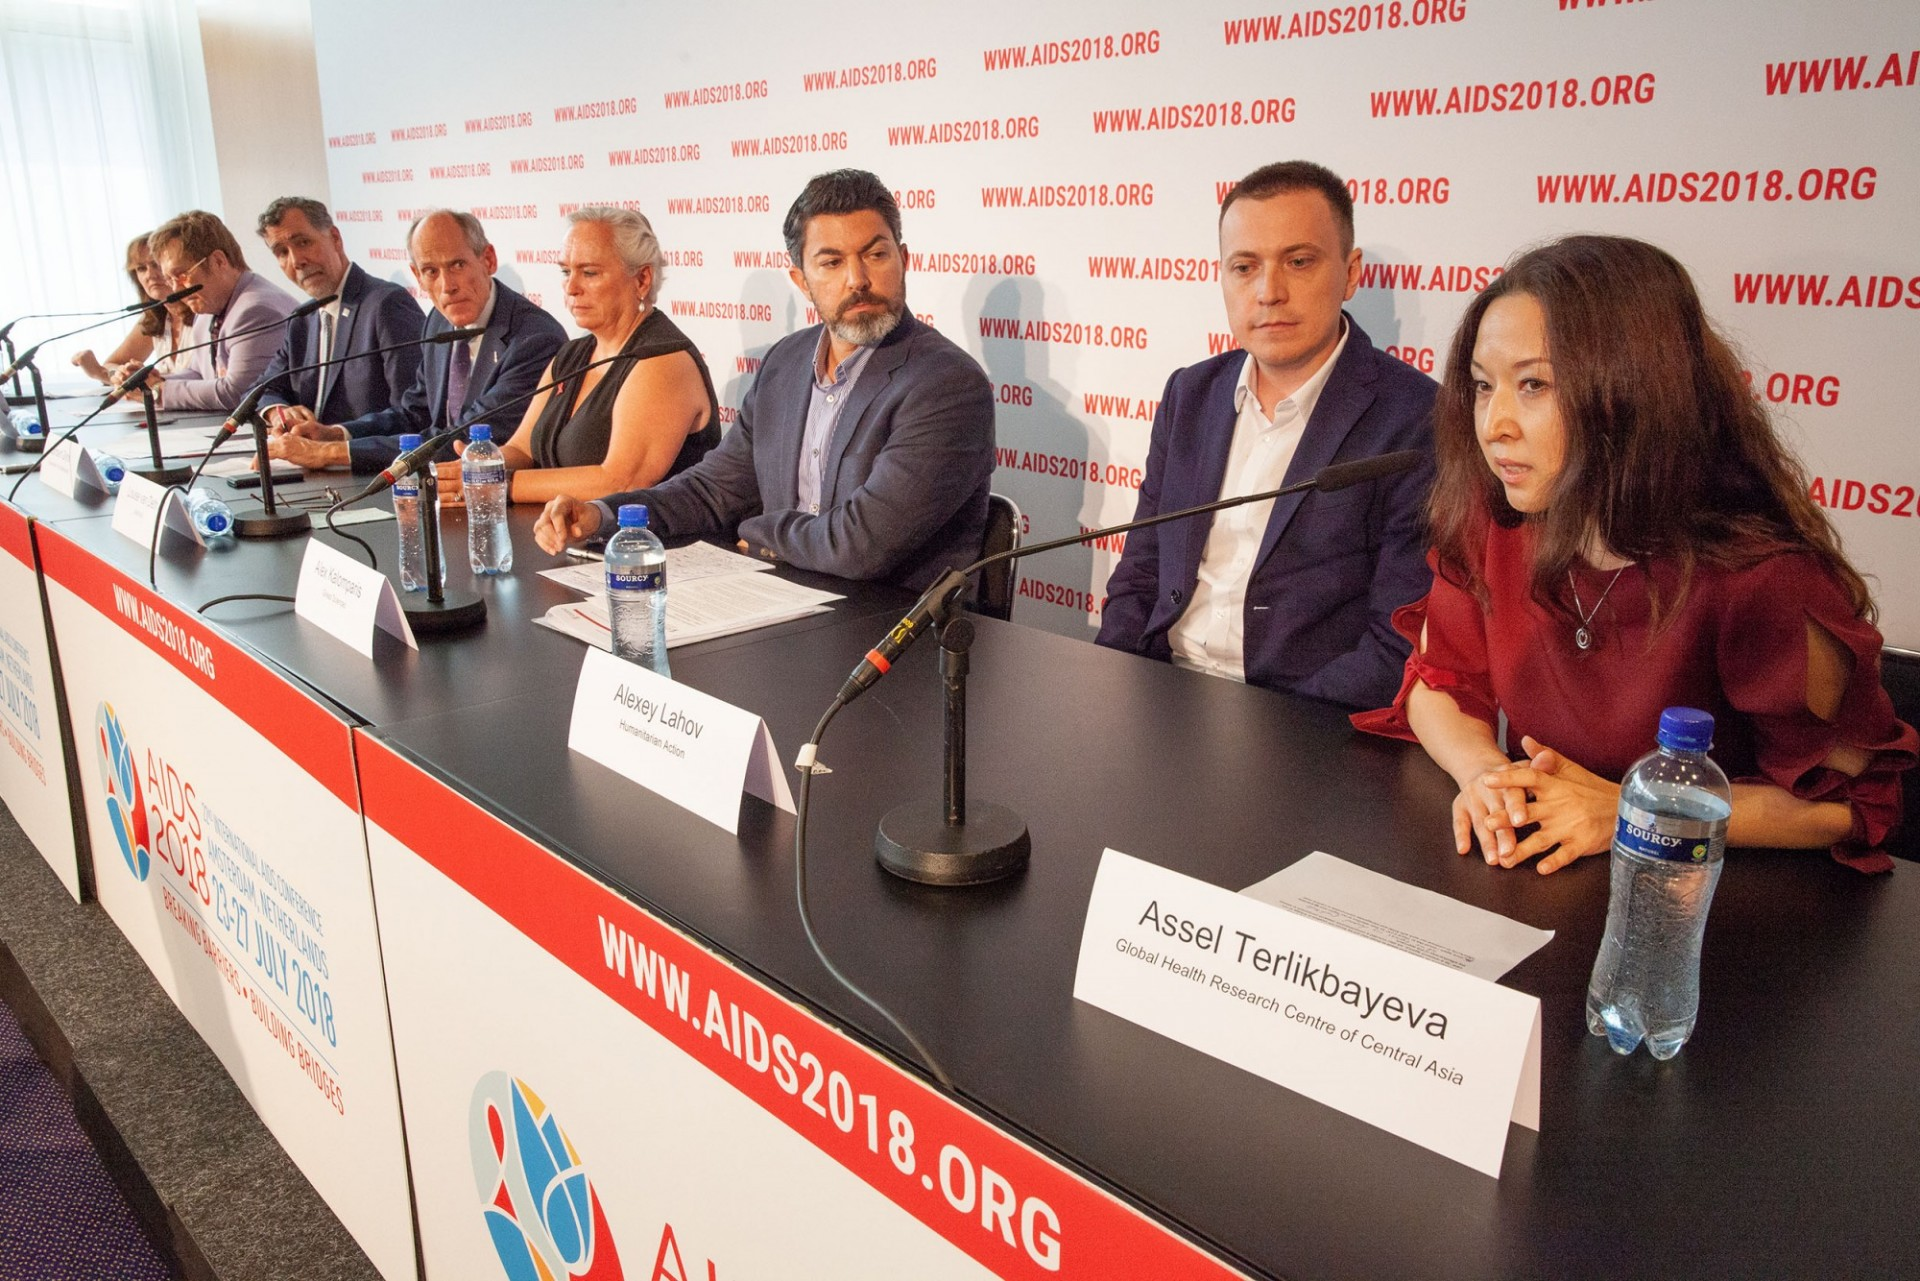 The Netherlands, Amsterdam, 24-7-2018. Pressconference on Eastern Europe and Central Asia with Assel Terlikbayeva describing situation on AIDS/HIV in the region. Photo: Rob Huibers for AIS.